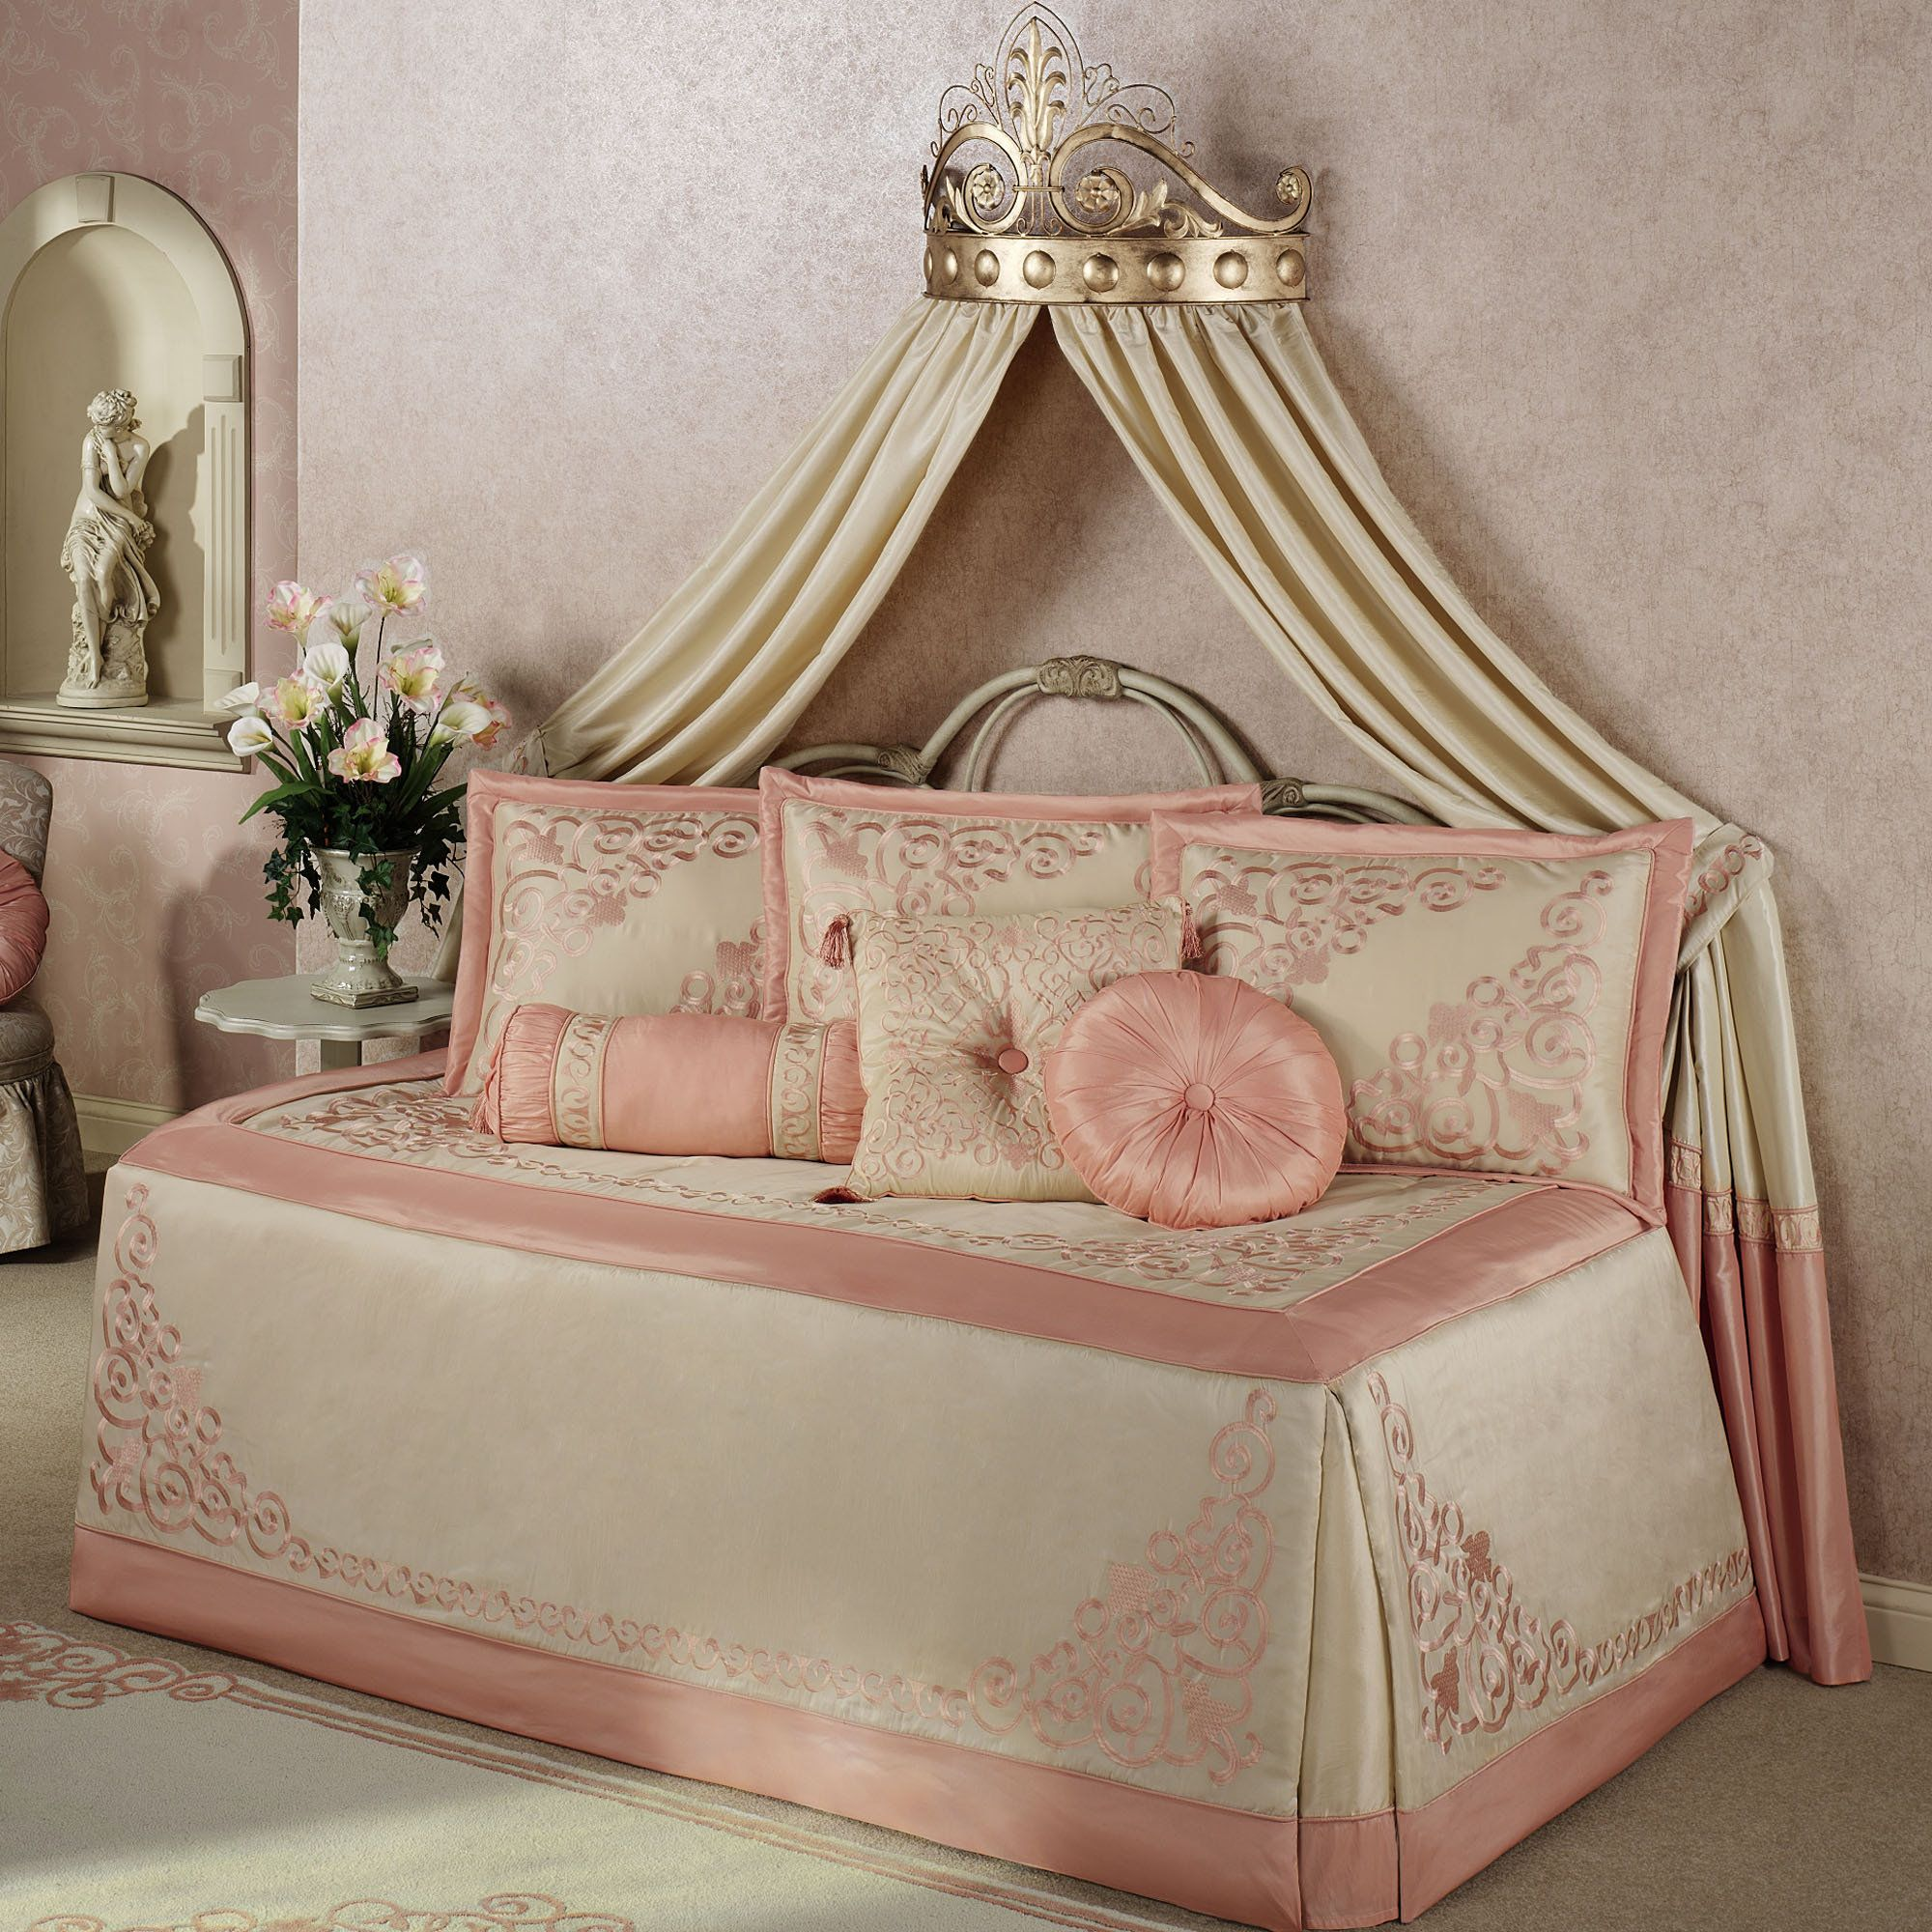 blush bedding ideas decorating pin quilts quilt daybed princess pinterest home